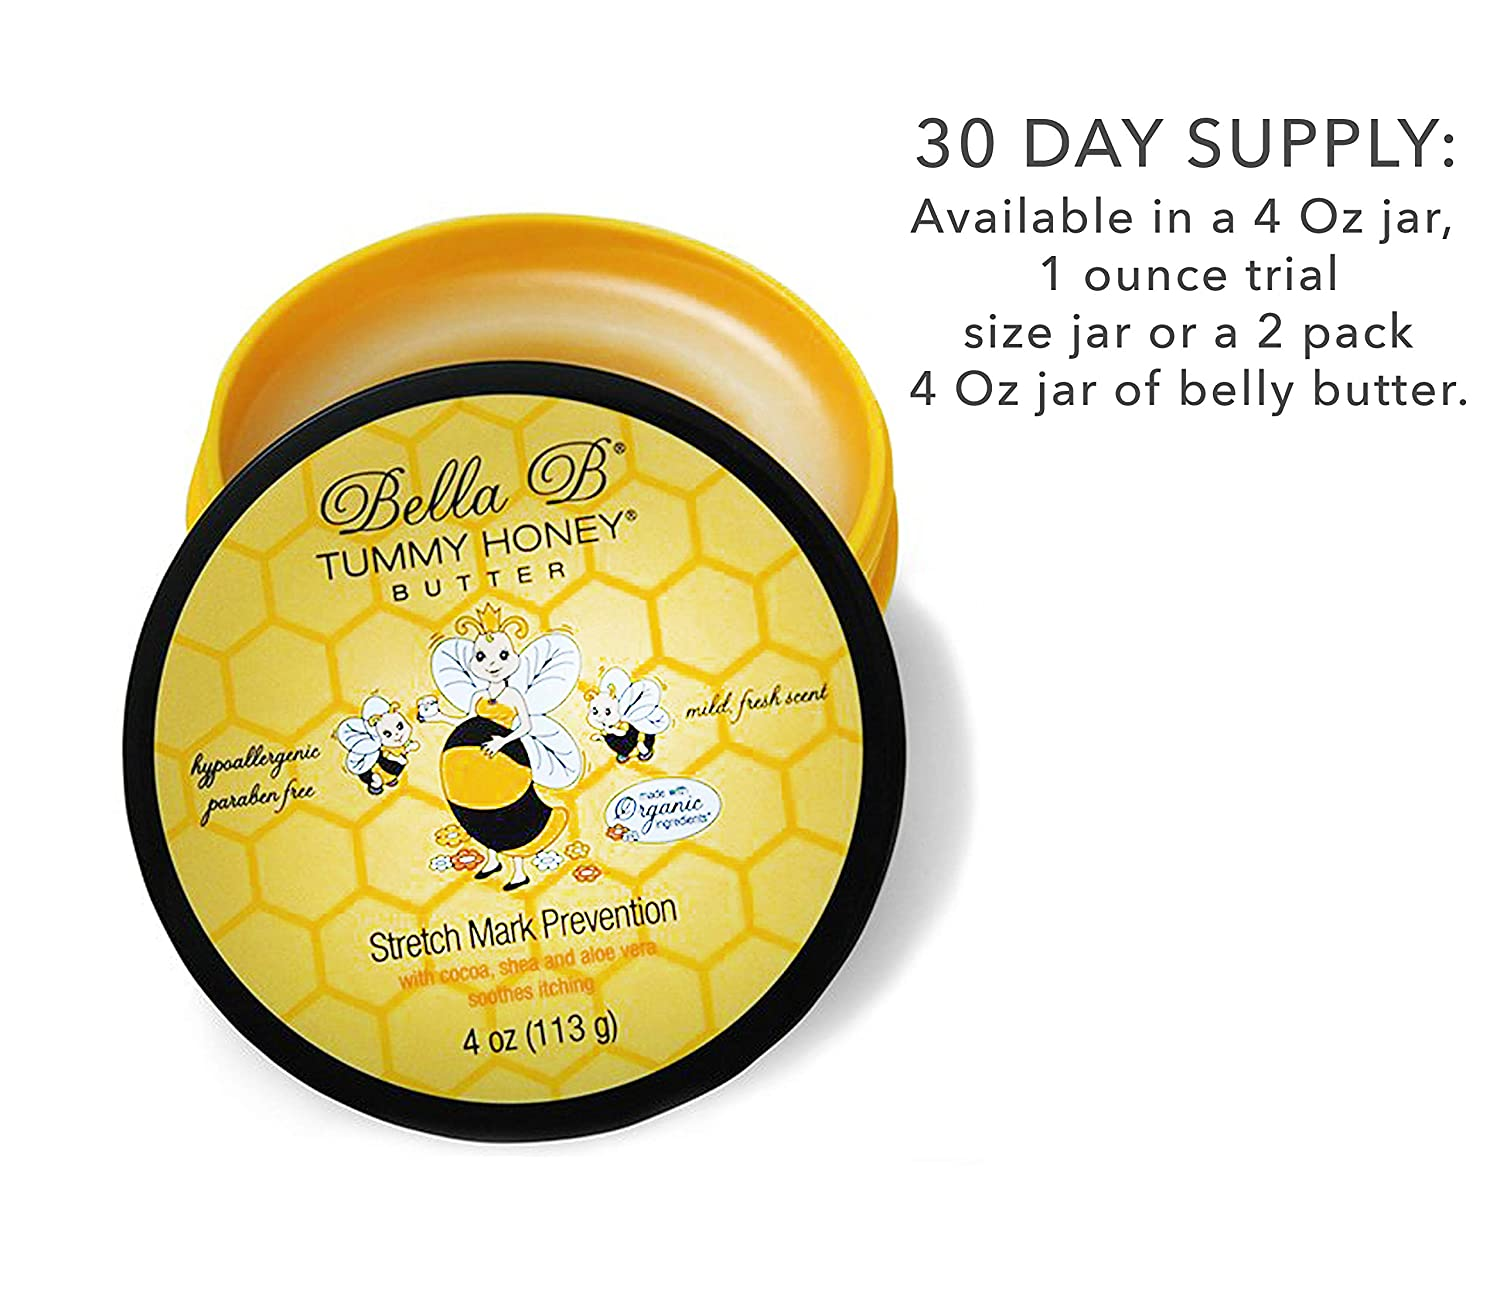 Amazon Com Bella B Tummy Honey Butter 4 Oz 1 Pack Tummy Butter With Natural Organic Ingredients Pregnancy Baby Safe Use Daily For Fading Stretch Marks Maternity Skin Care Products Beauty